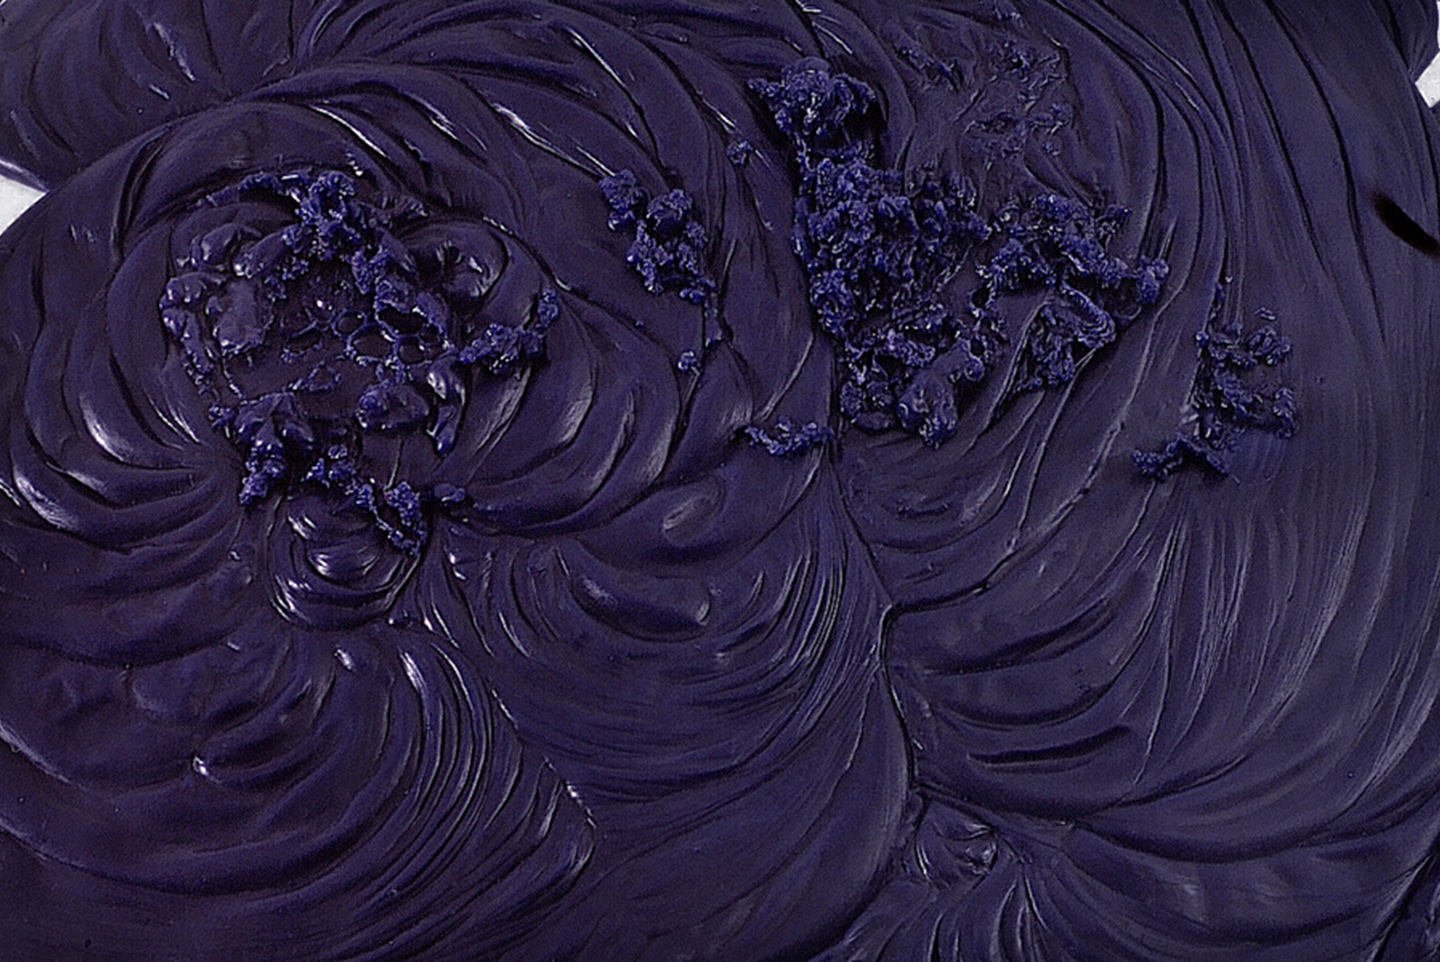 detail, Large Pool and Maine Squeeze  , 2002. Pigmented cast rubber.